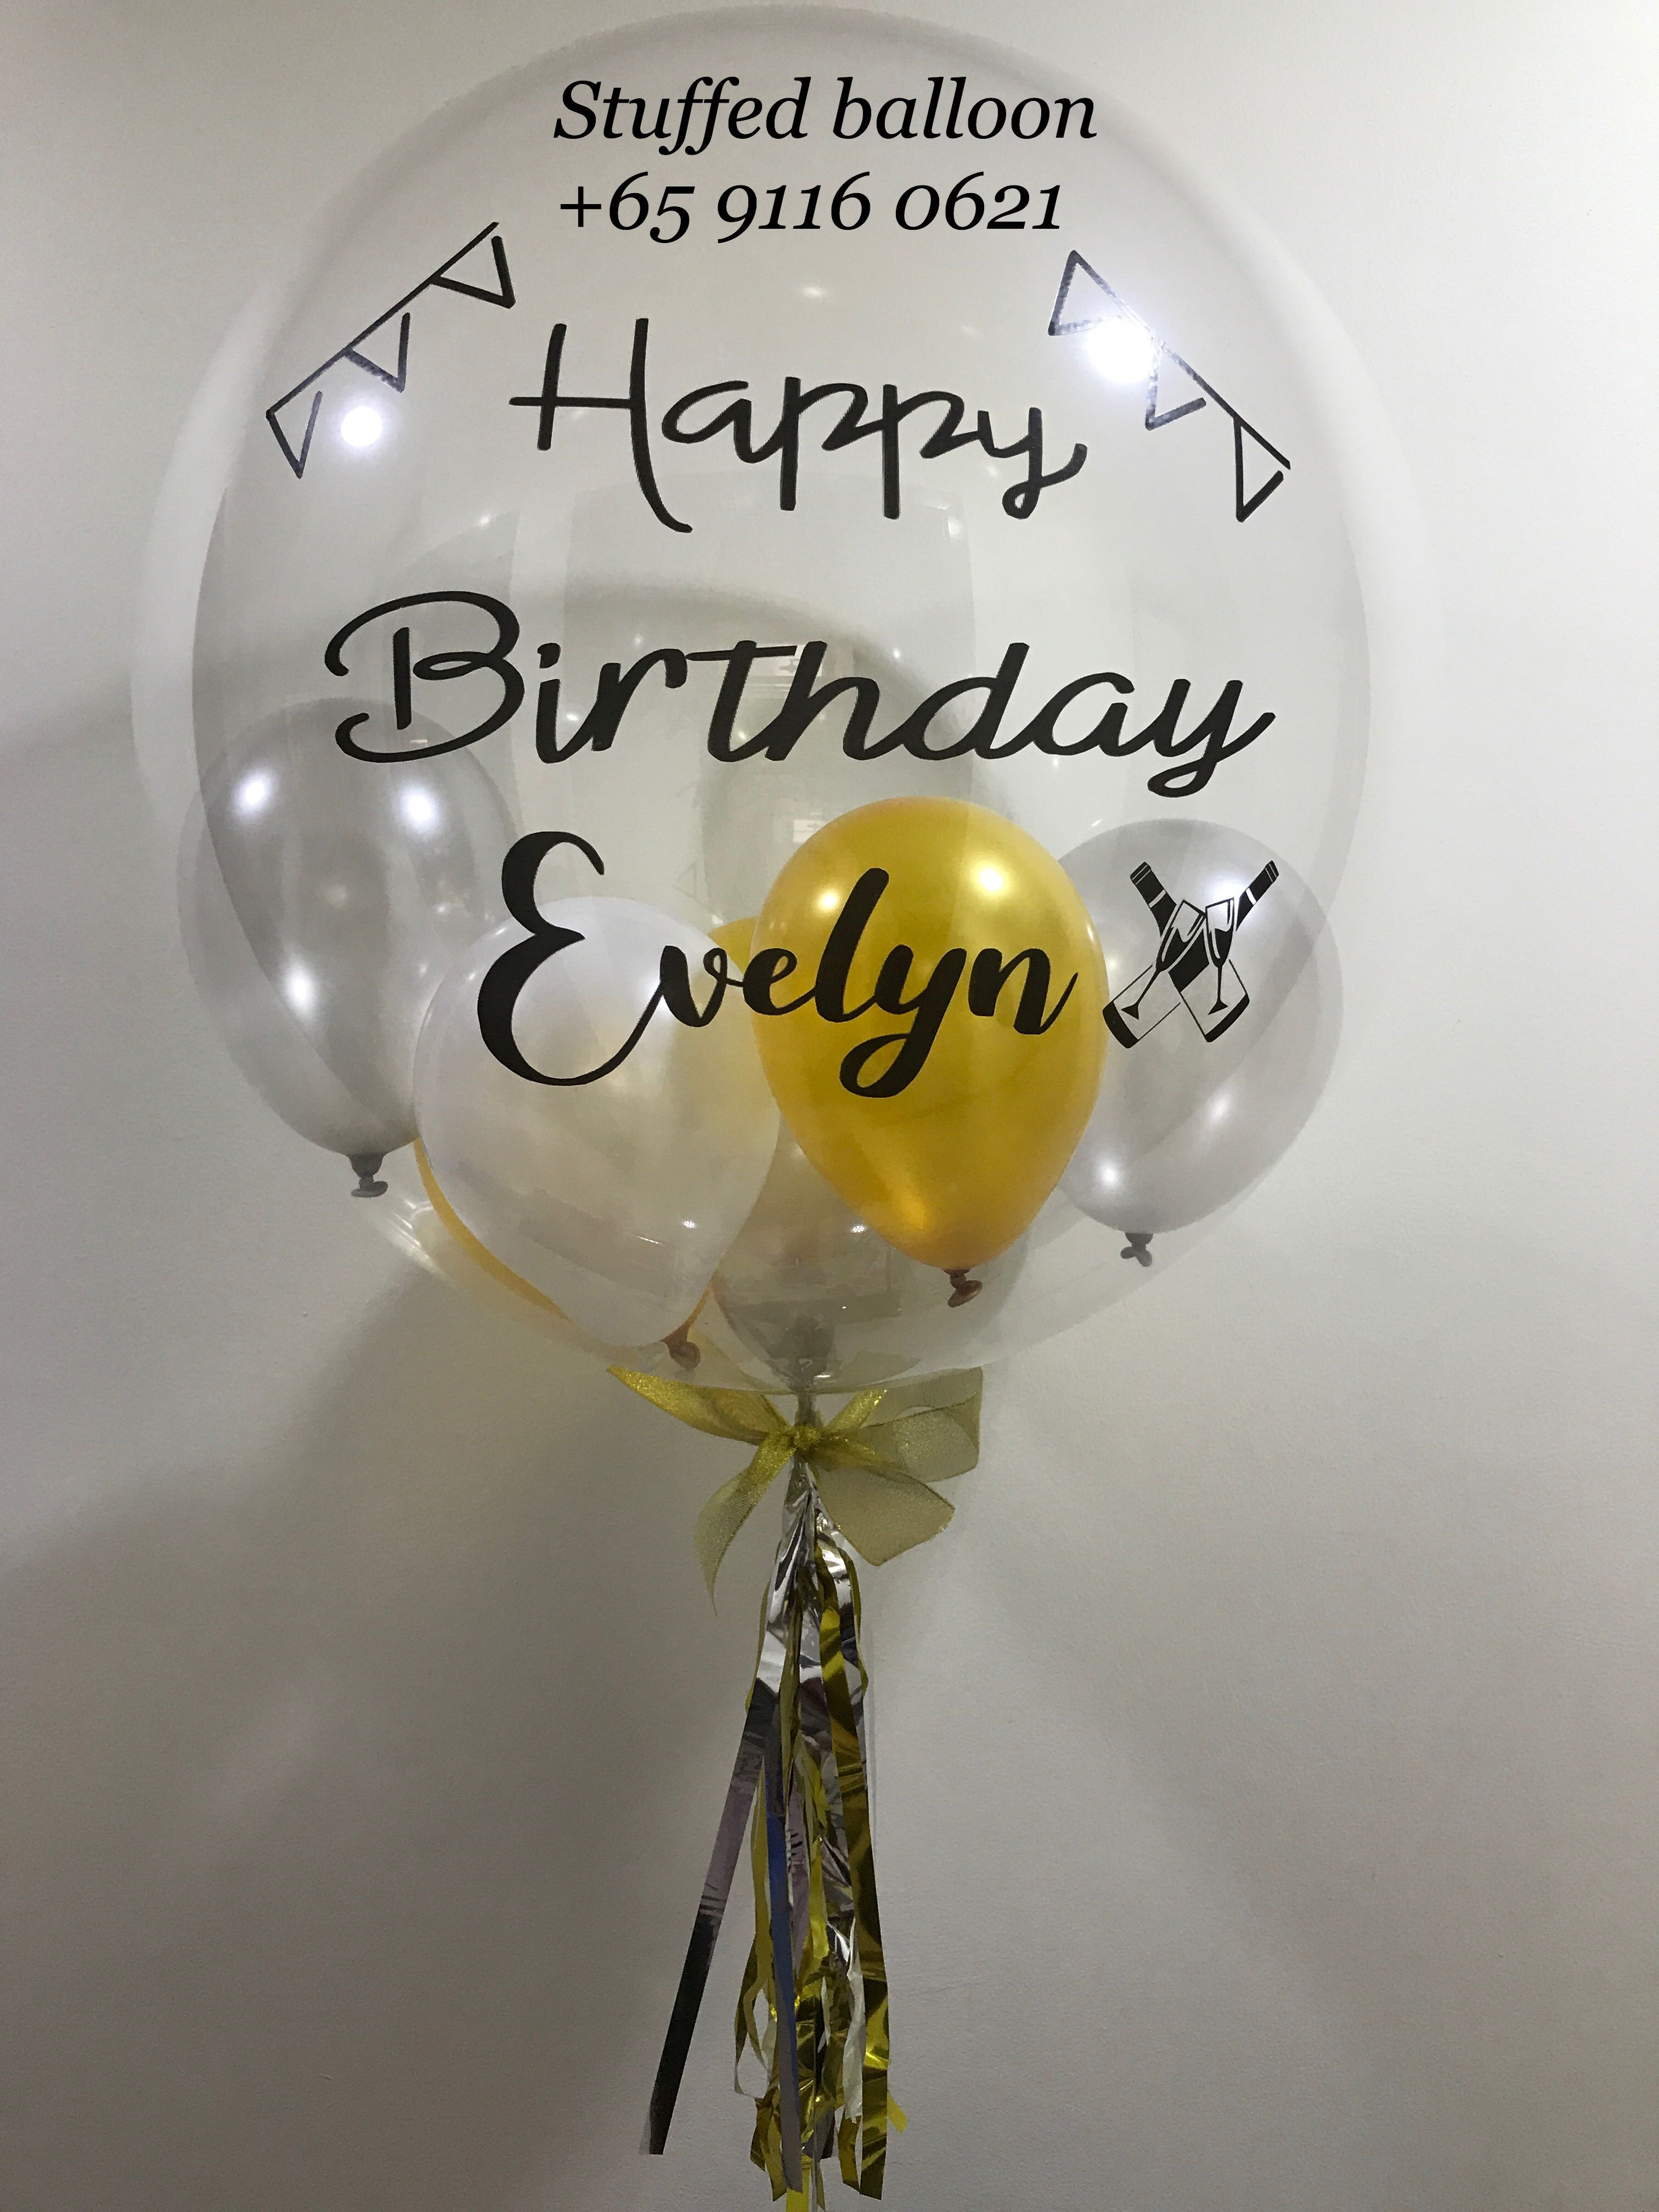 Happy Birthday Balloon Customized Bubble Party Personalized Design Craft Supplies Tools On Carousell